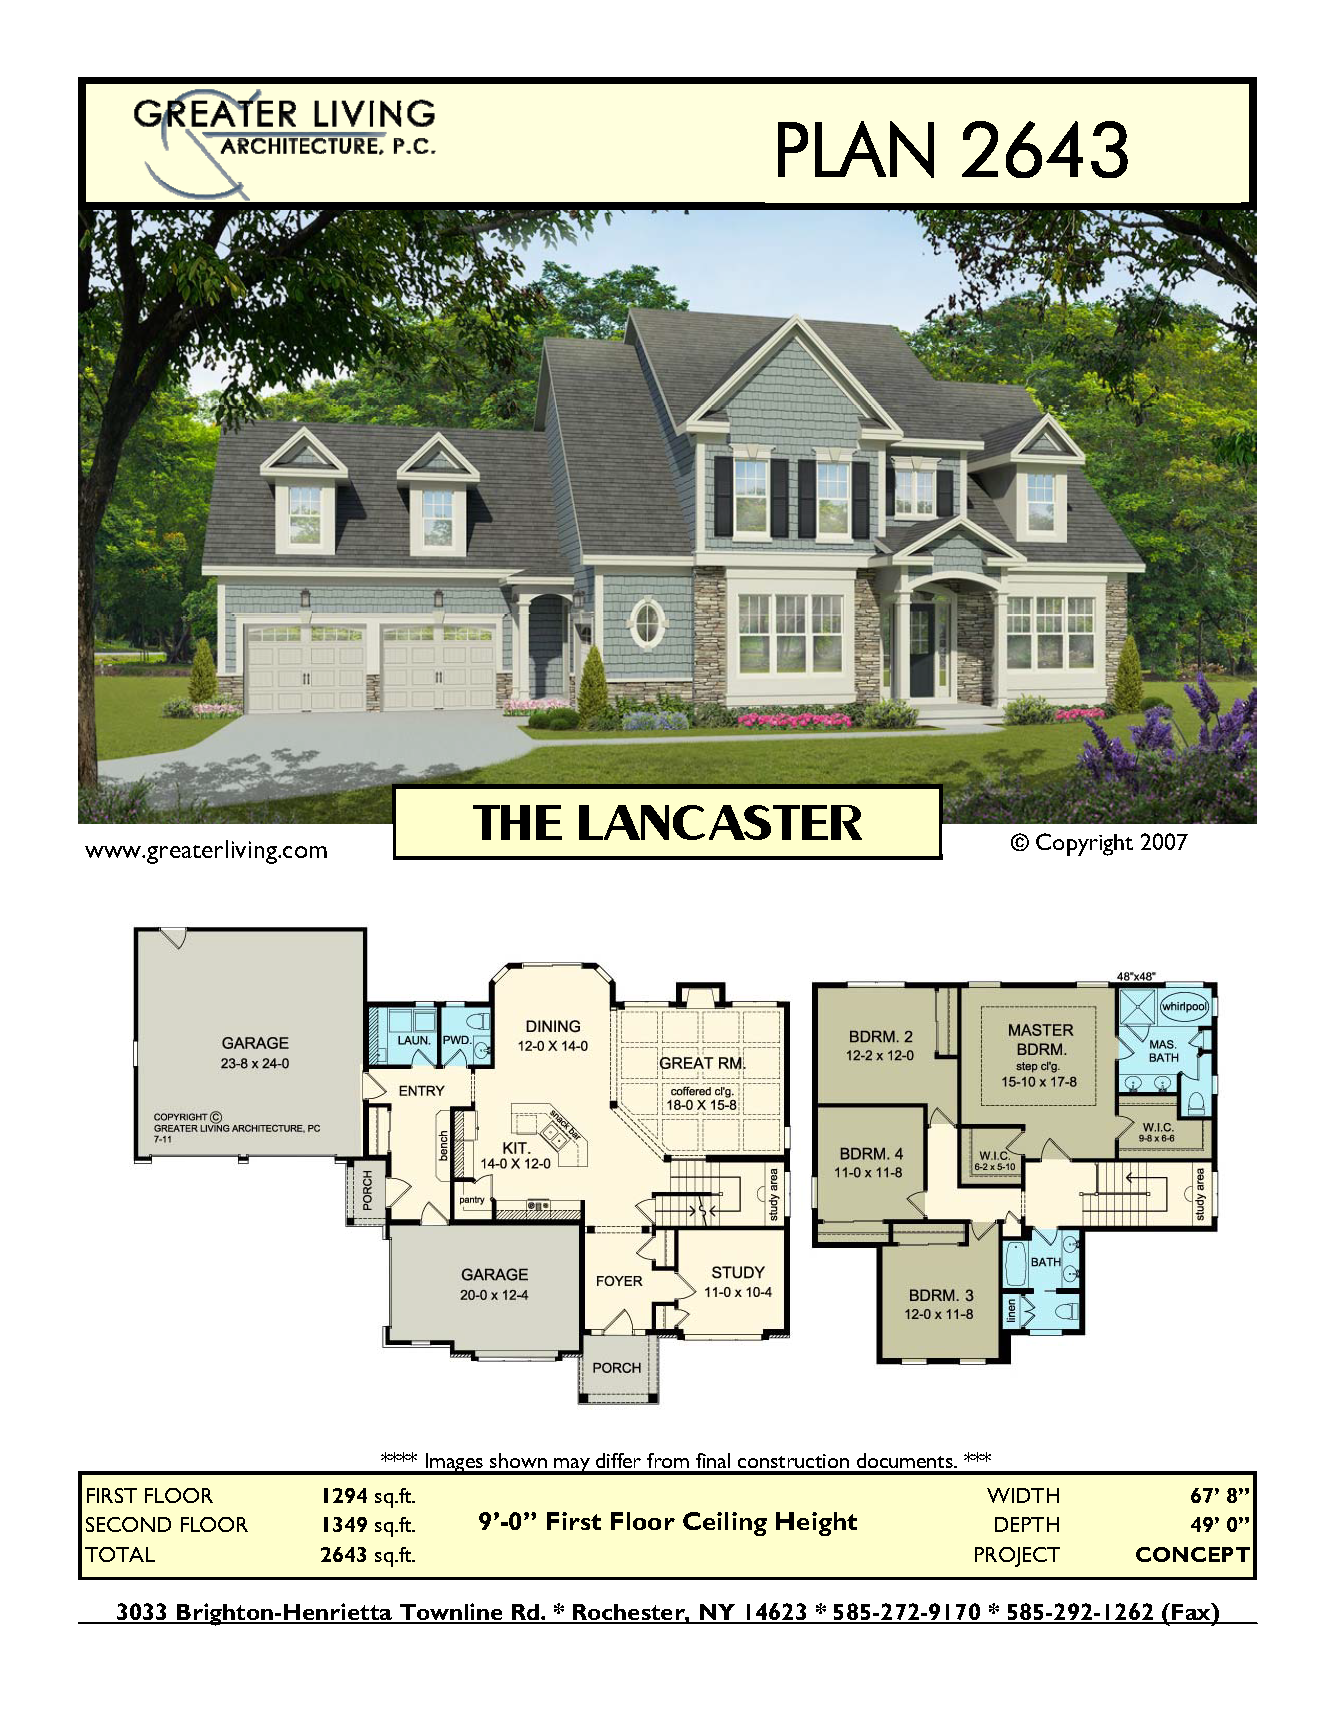 Plan 2643: THE LANCASTER - House Plans -  Two Story House Plans - 2 Story - Greater Living Architecture - Residential Architecture